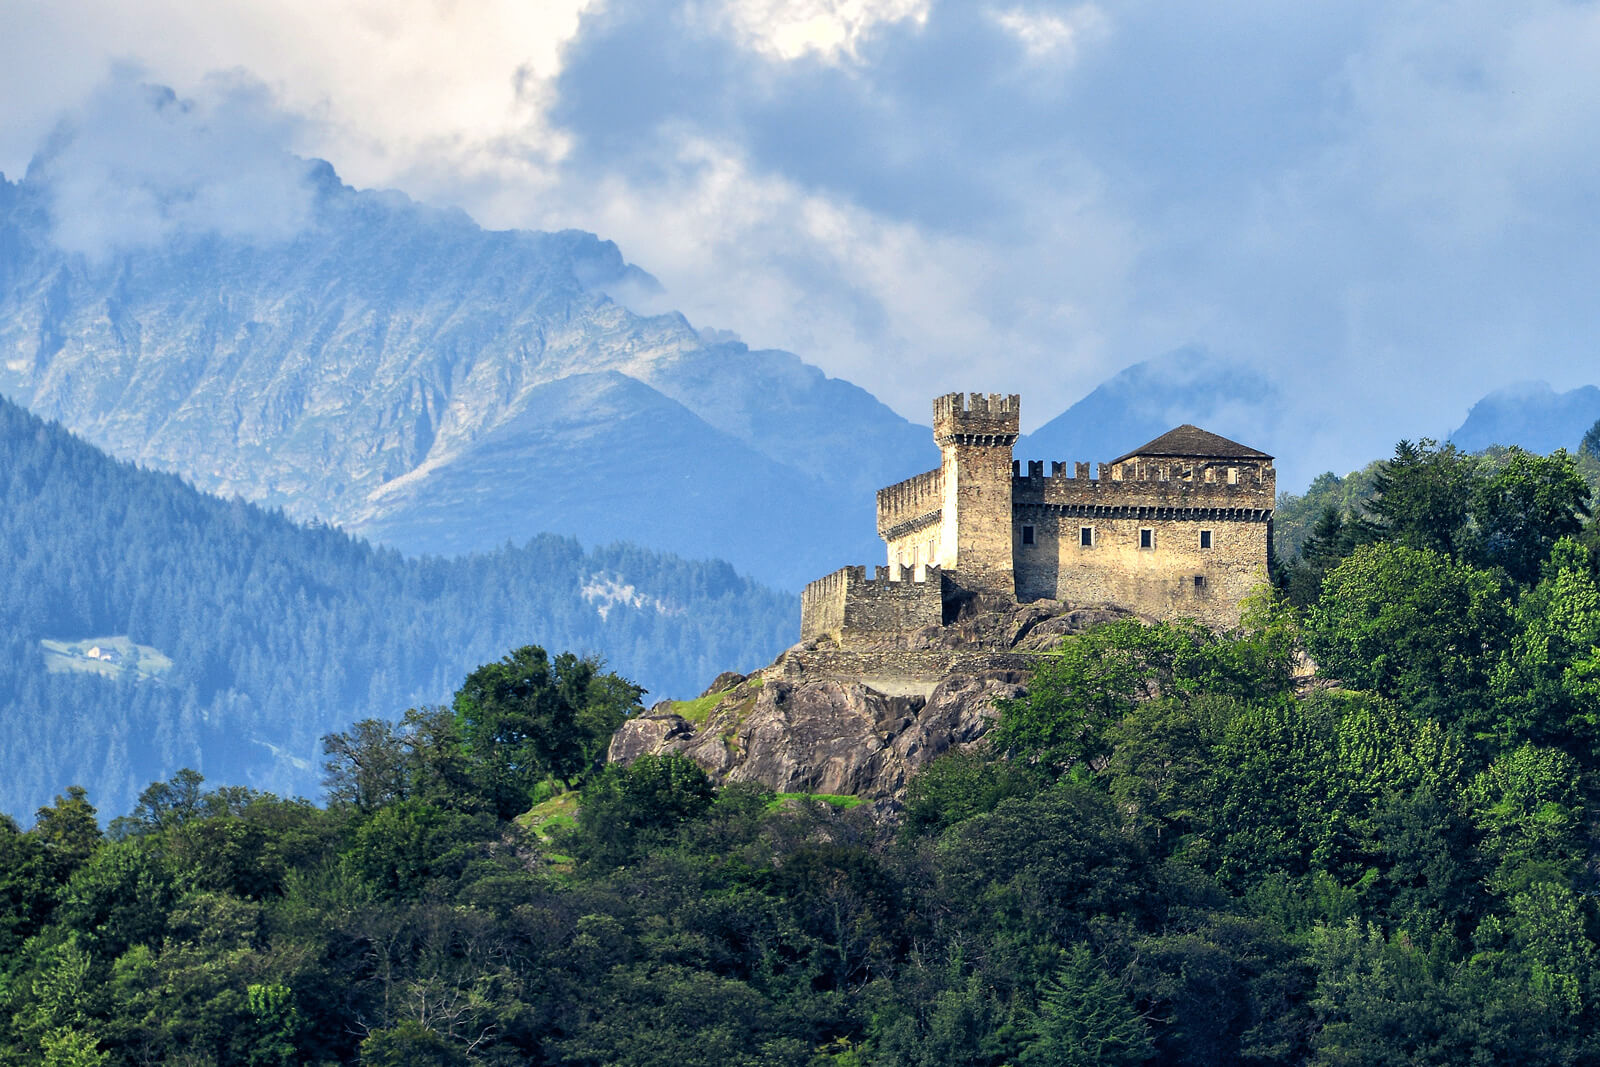 Bellinzona Castles - UNESCO World Heritage